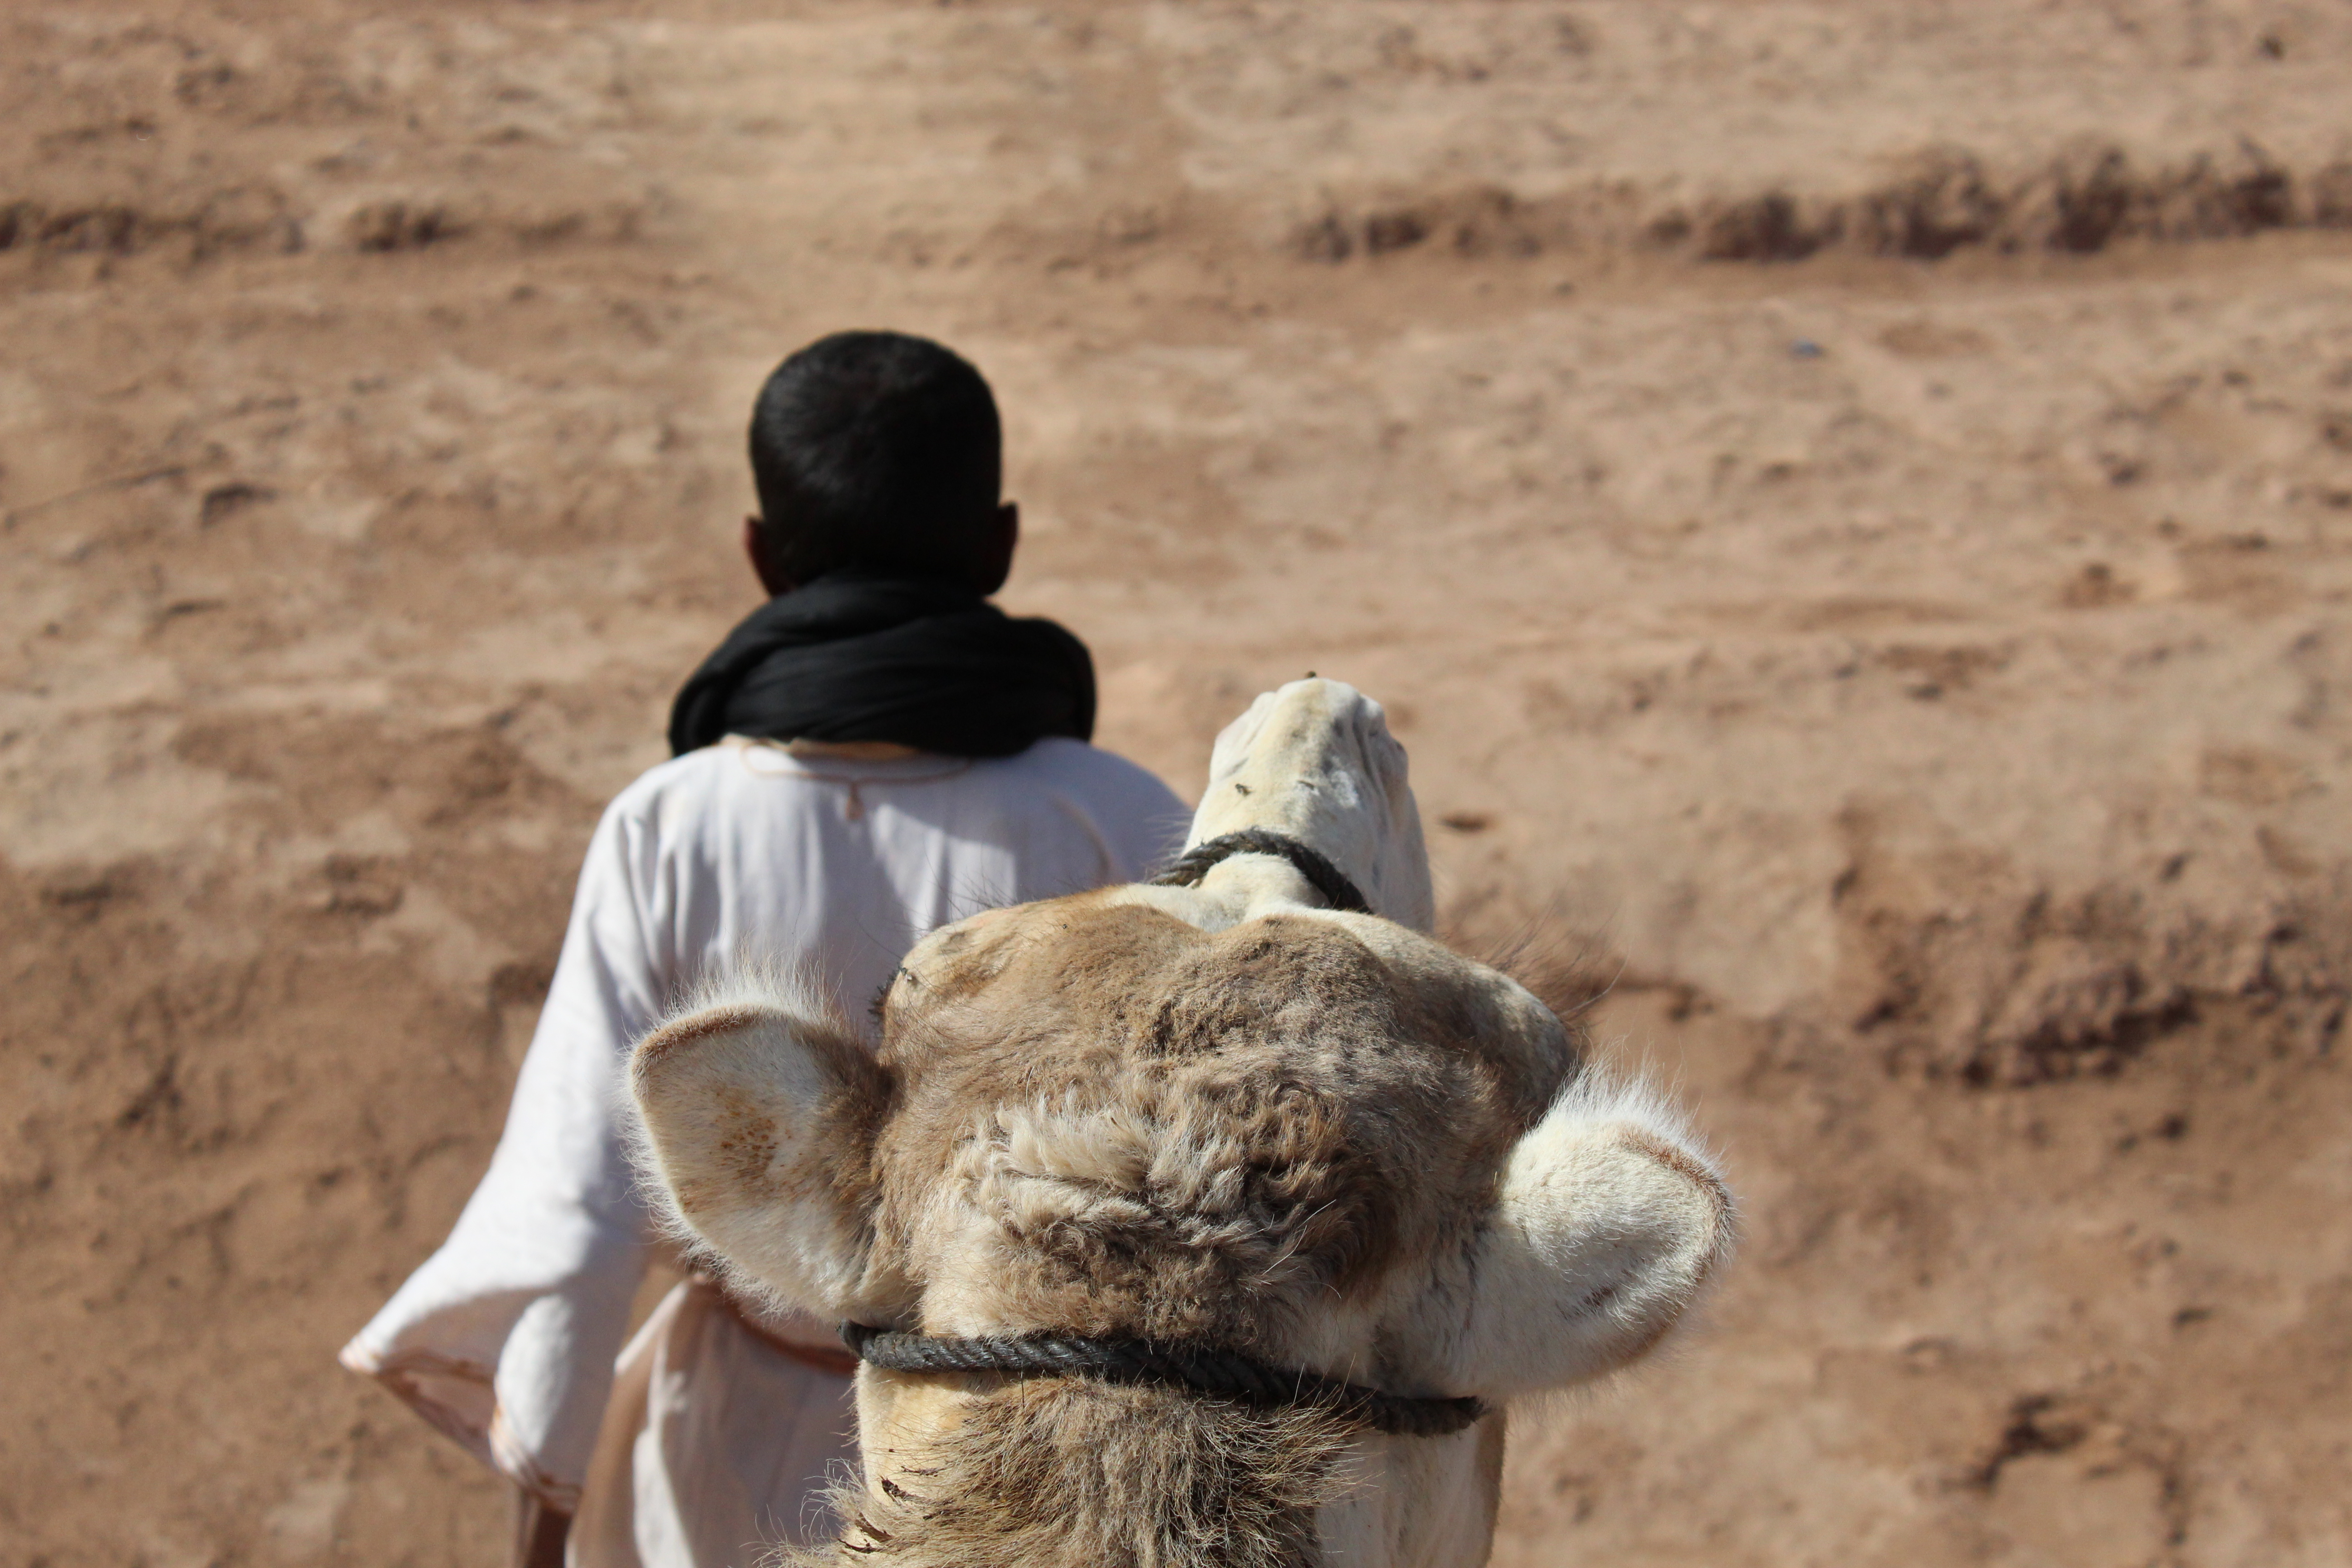 Abdul and a camel in Morocco